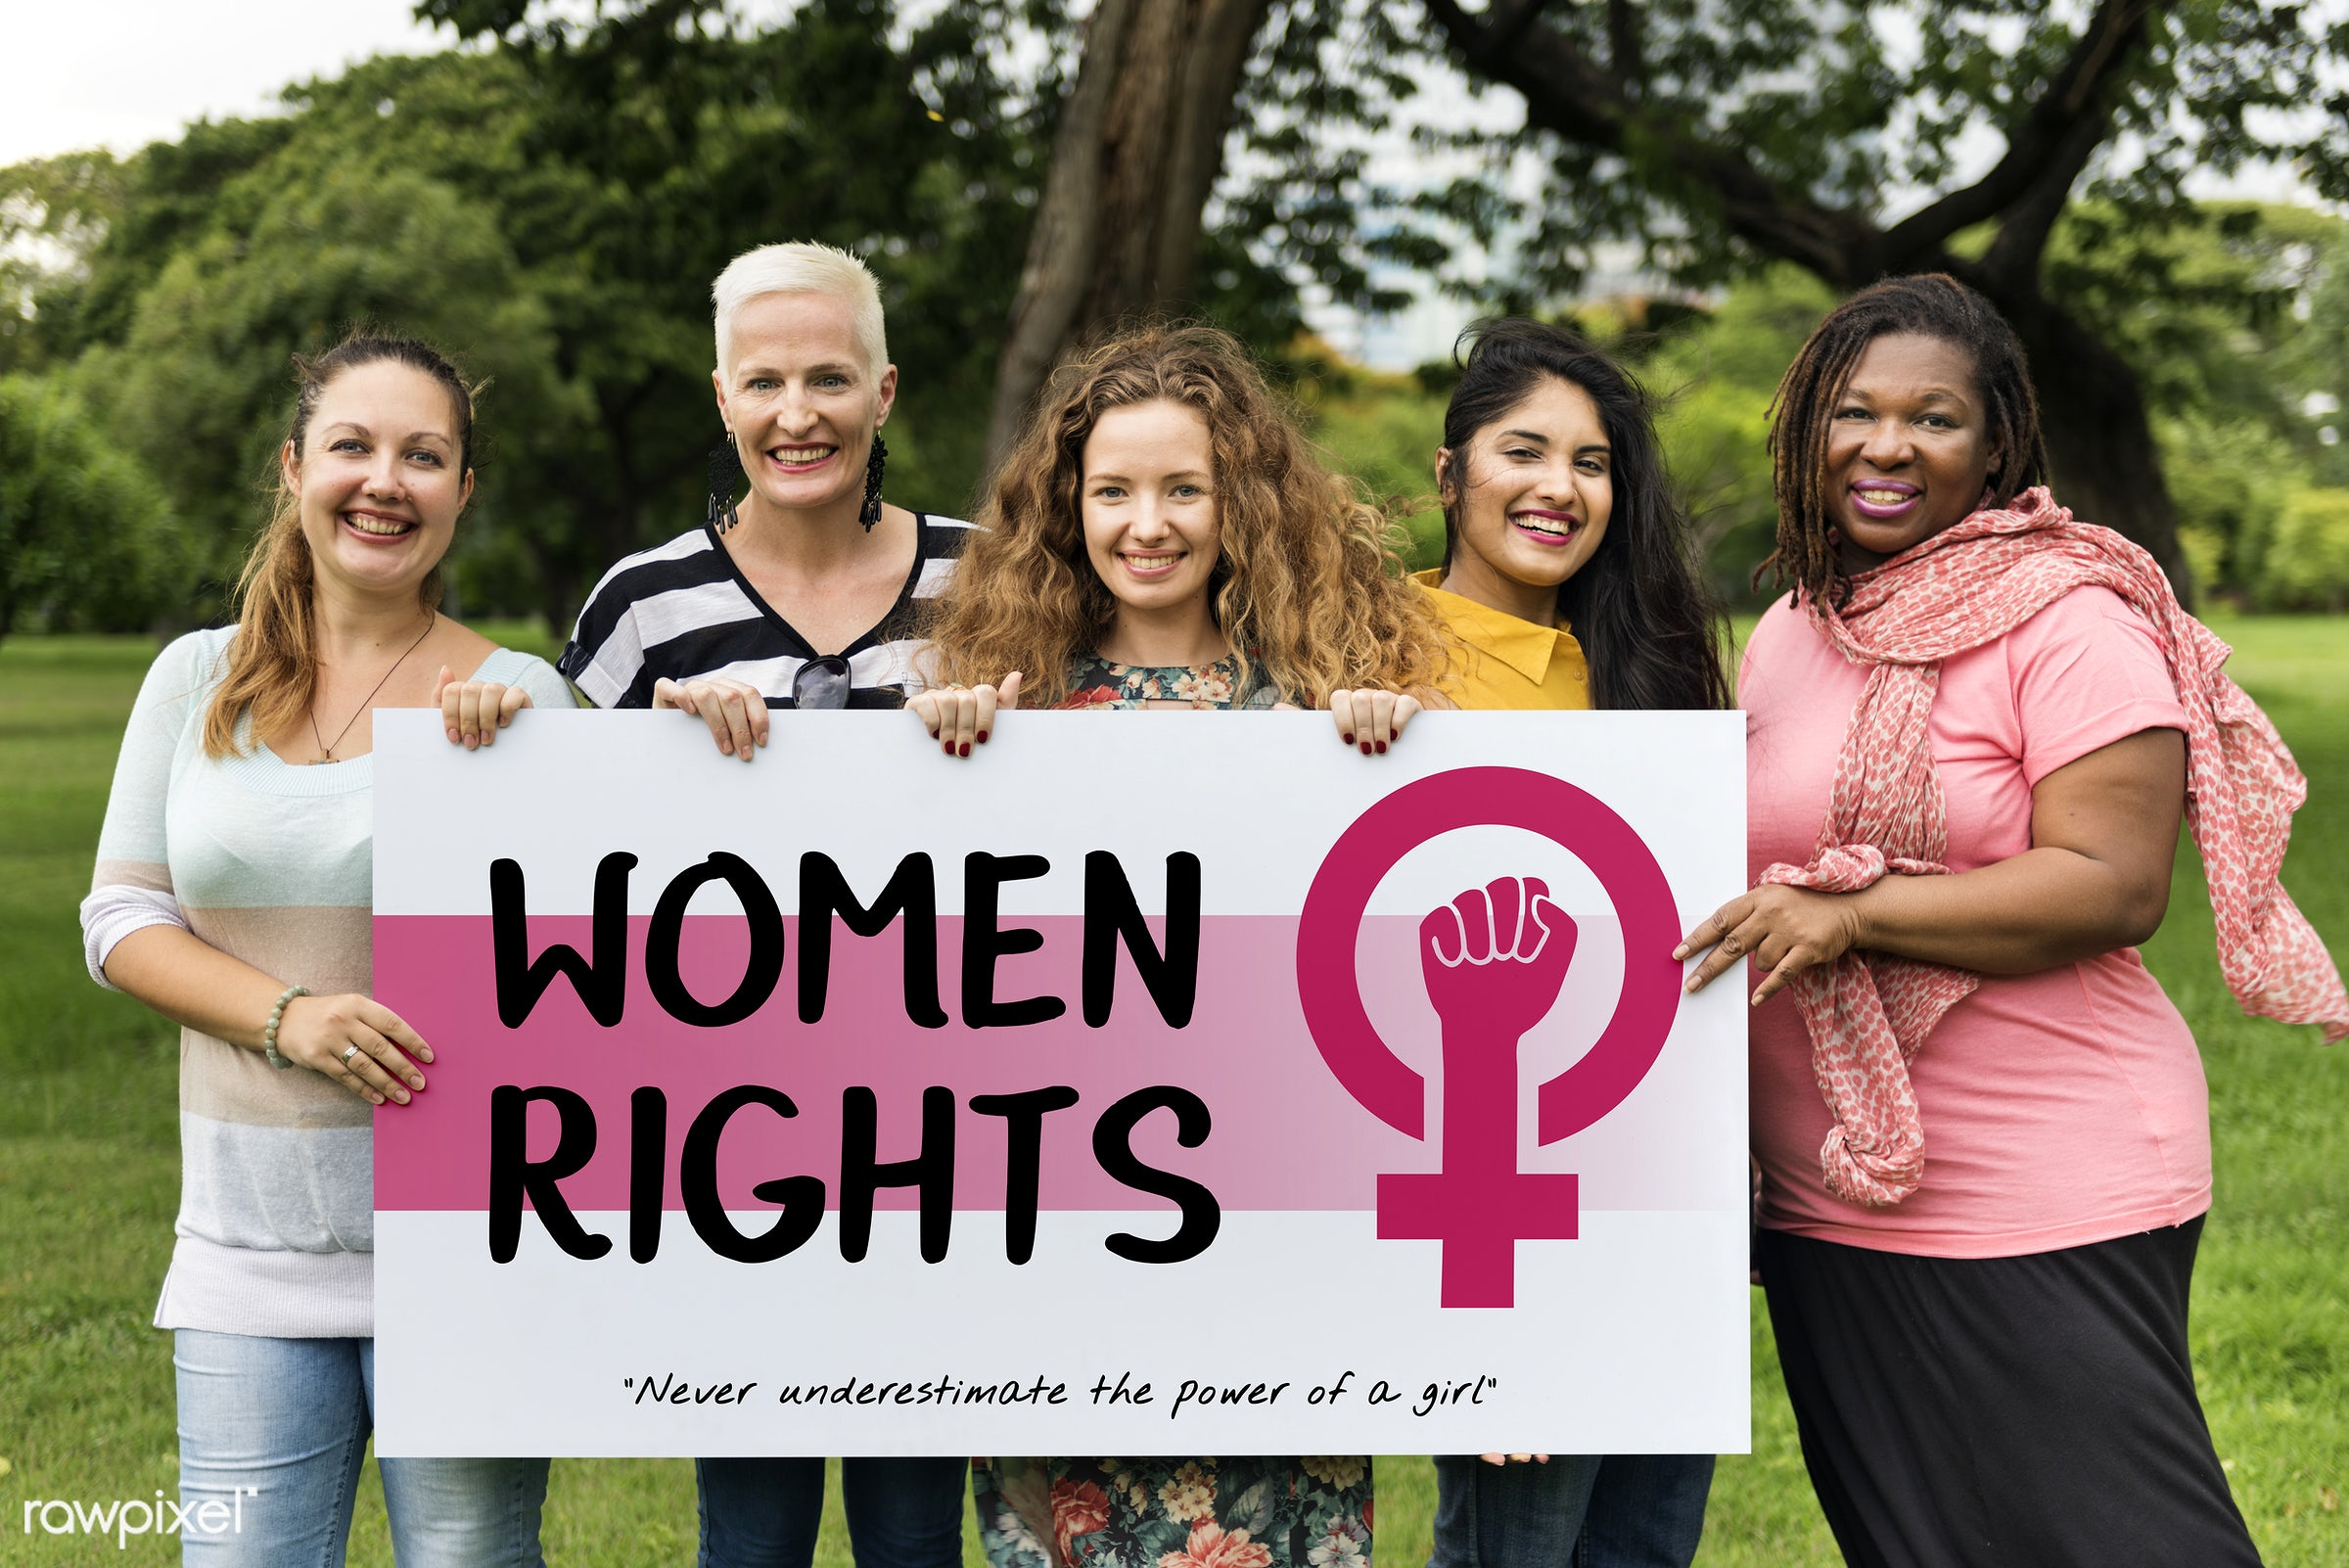 Women rights - equality, adult, be yourself, card, celebration, confidence, diversity, equal opportunity, female, femininity...